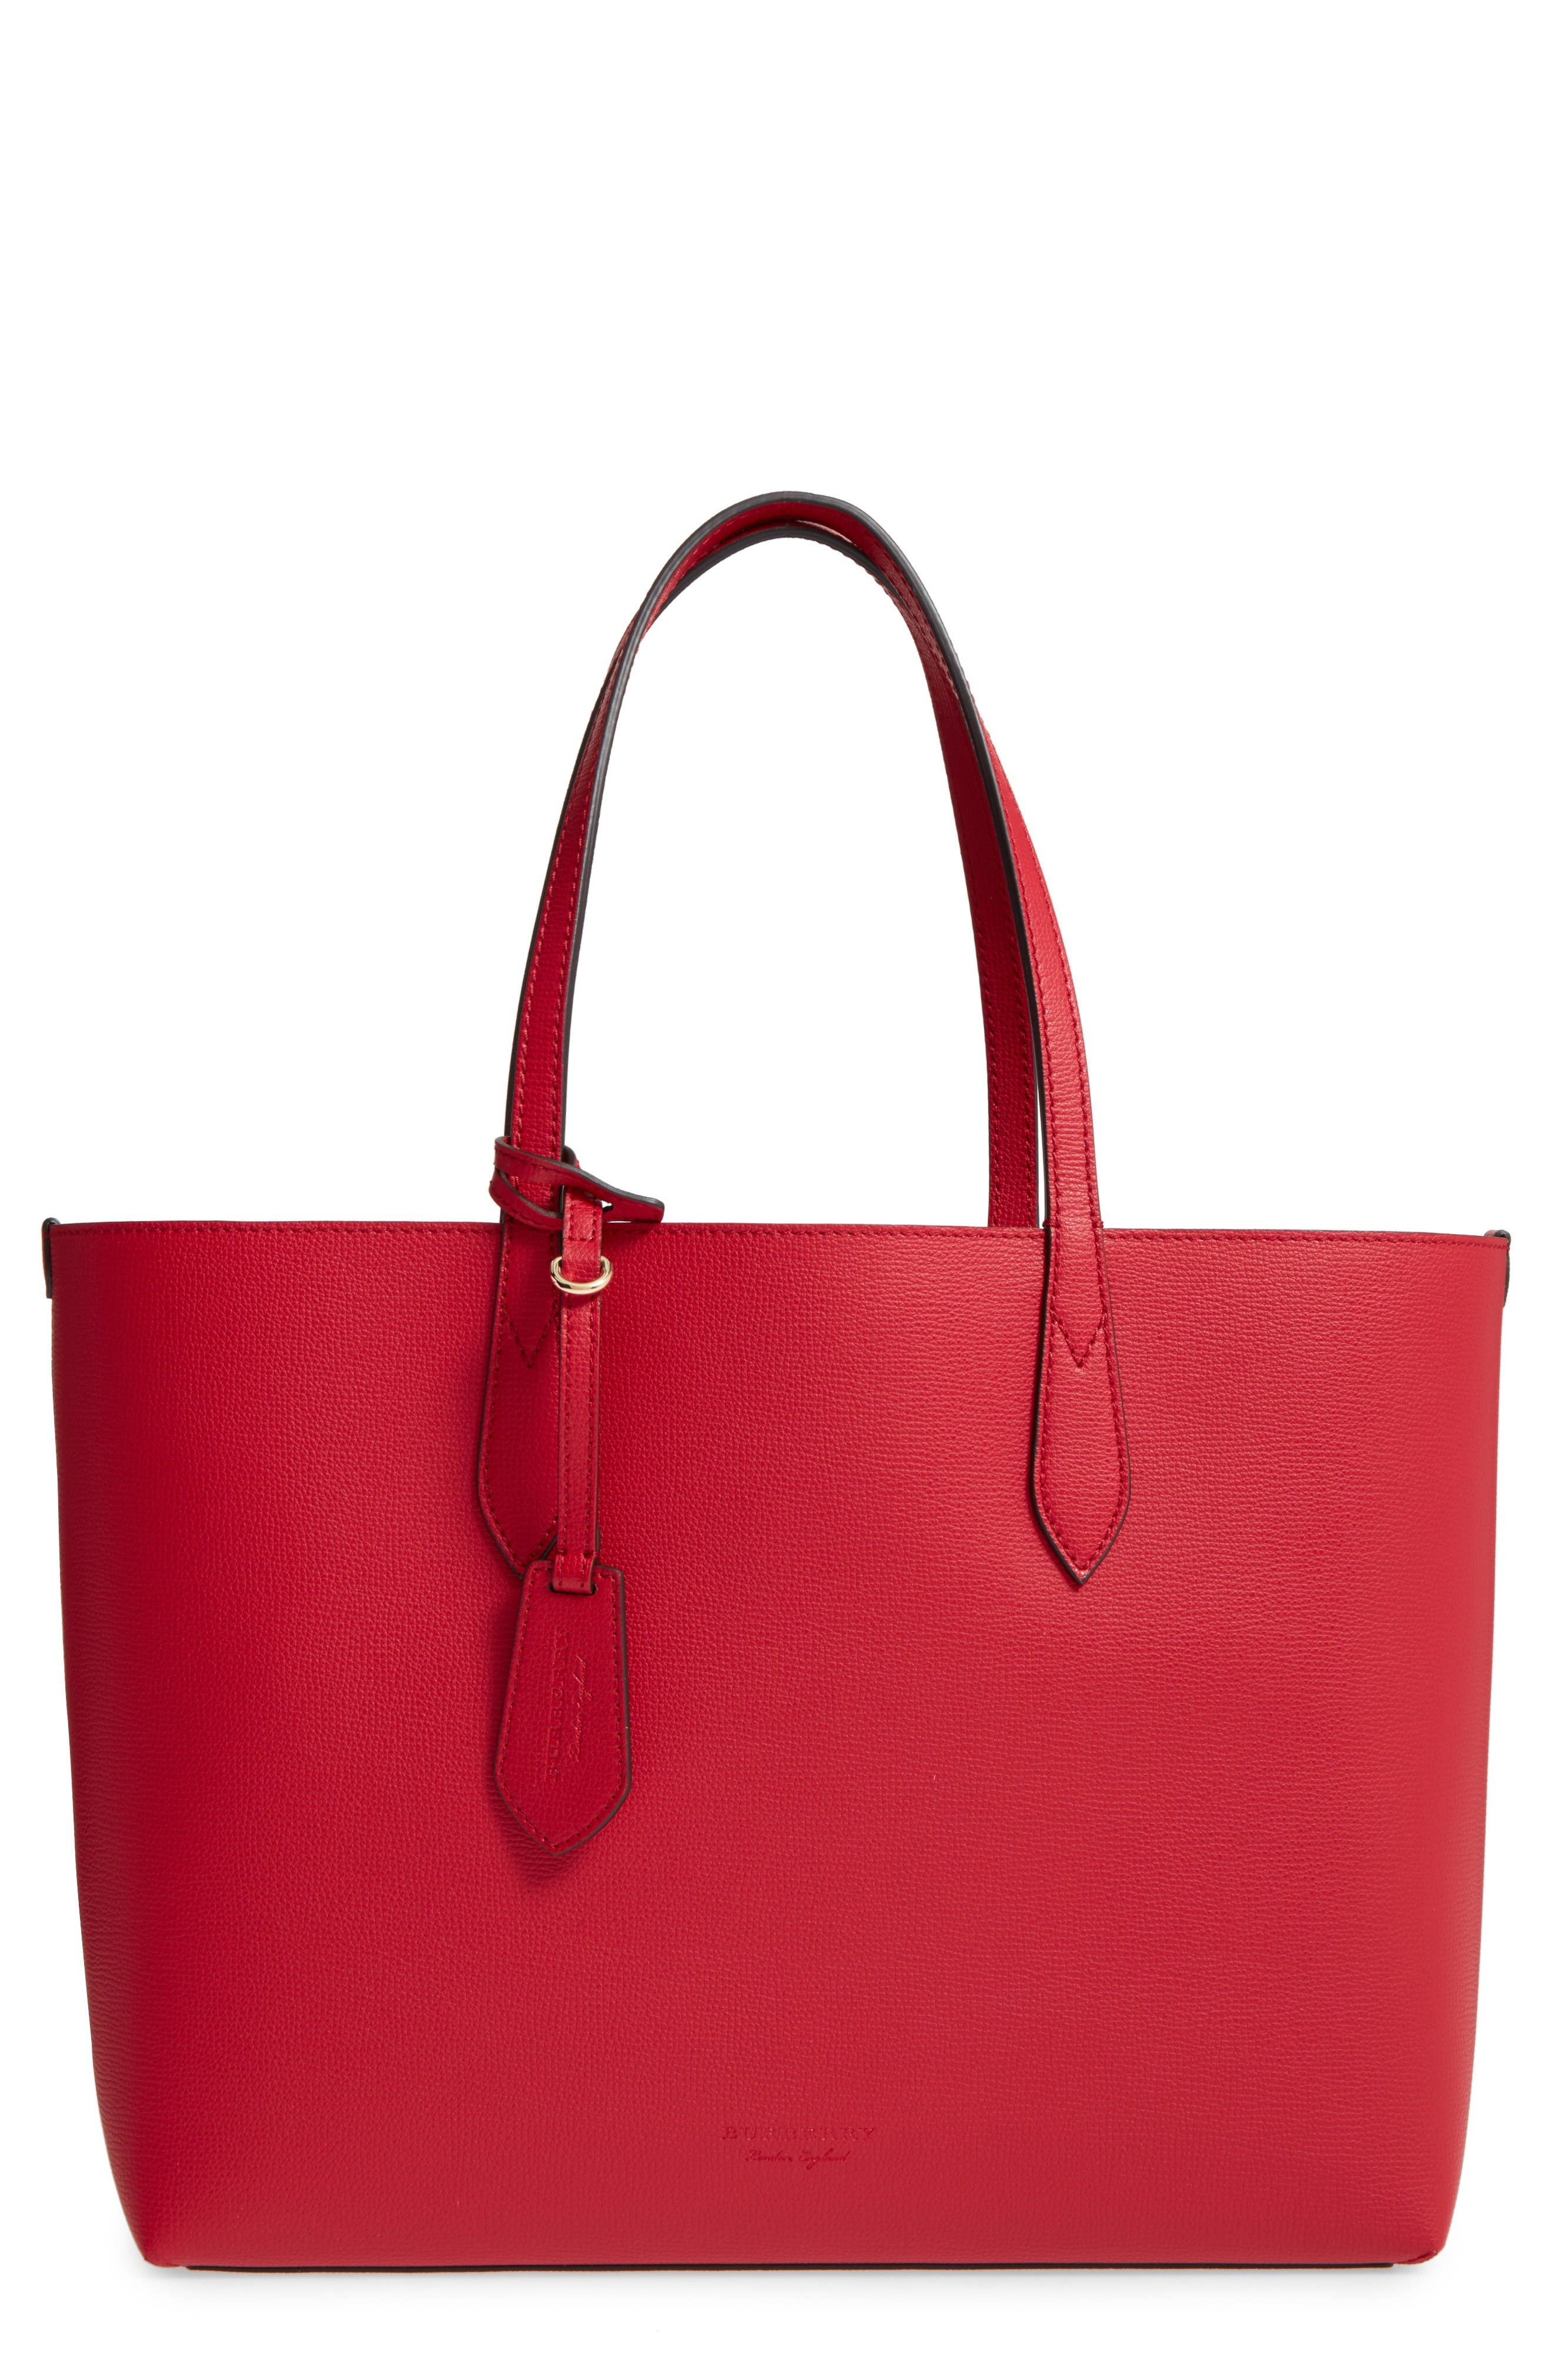 Main Image - Burberry Reversible Leather Tote